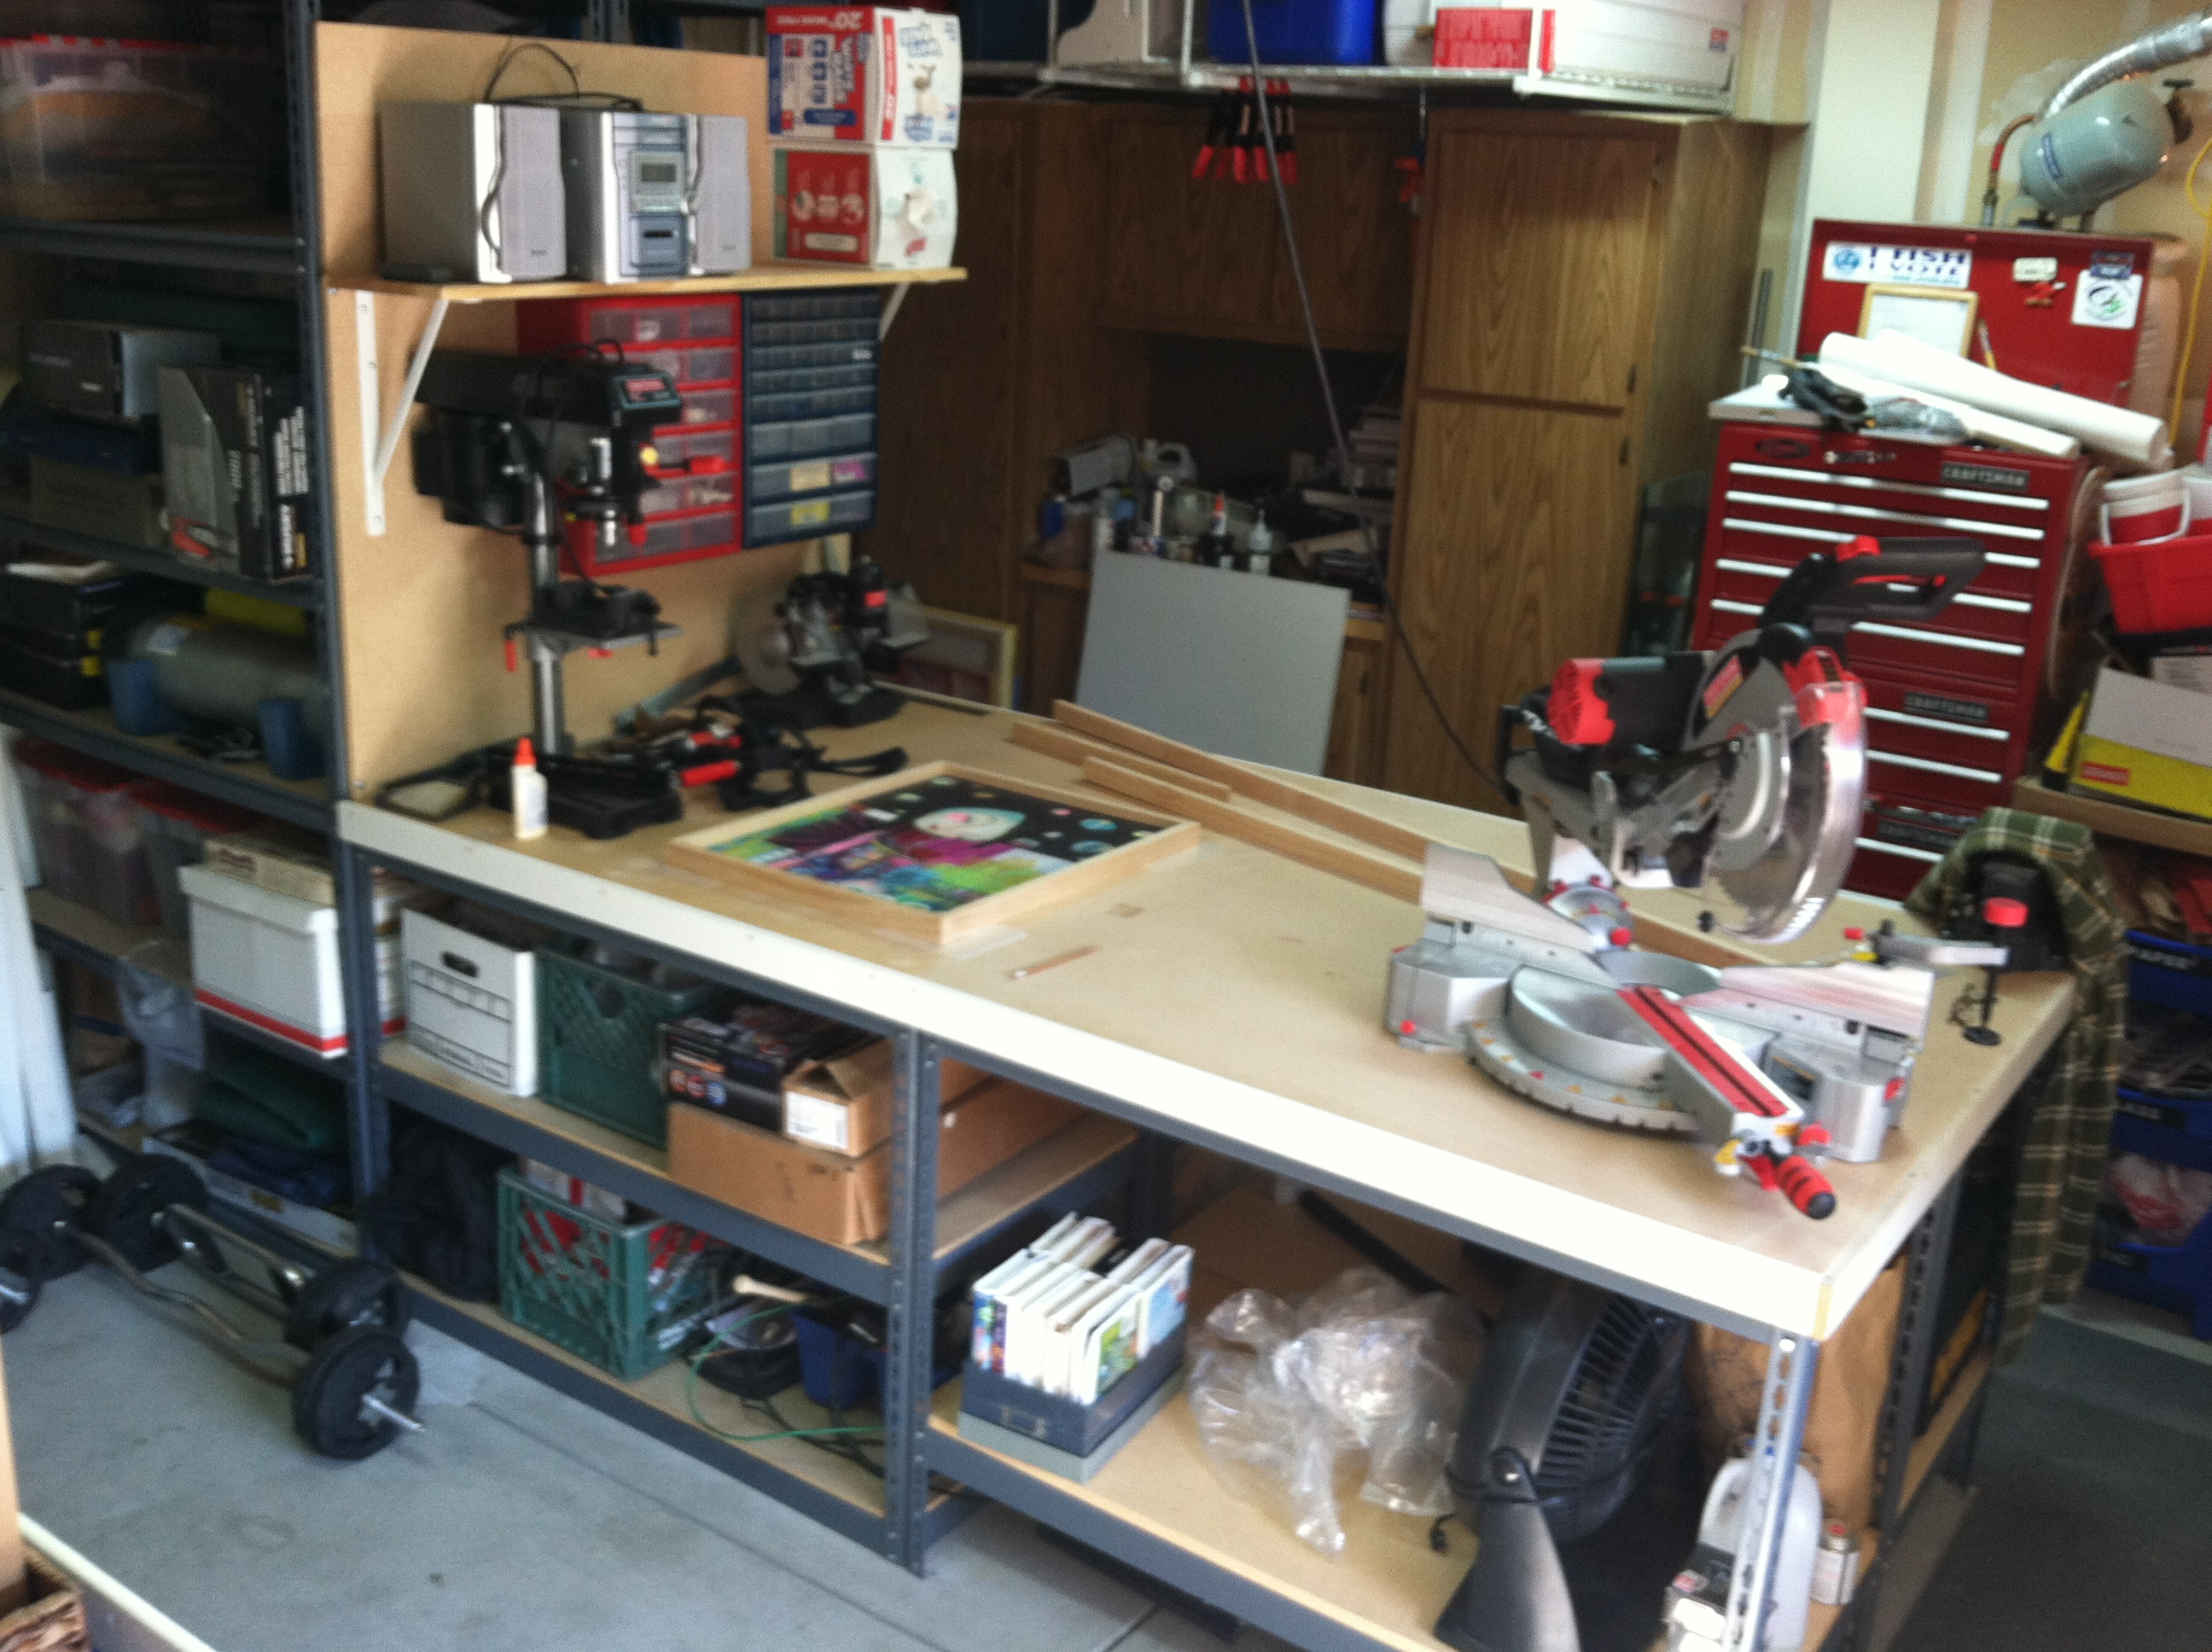 Derang: Wood workbench plans of action